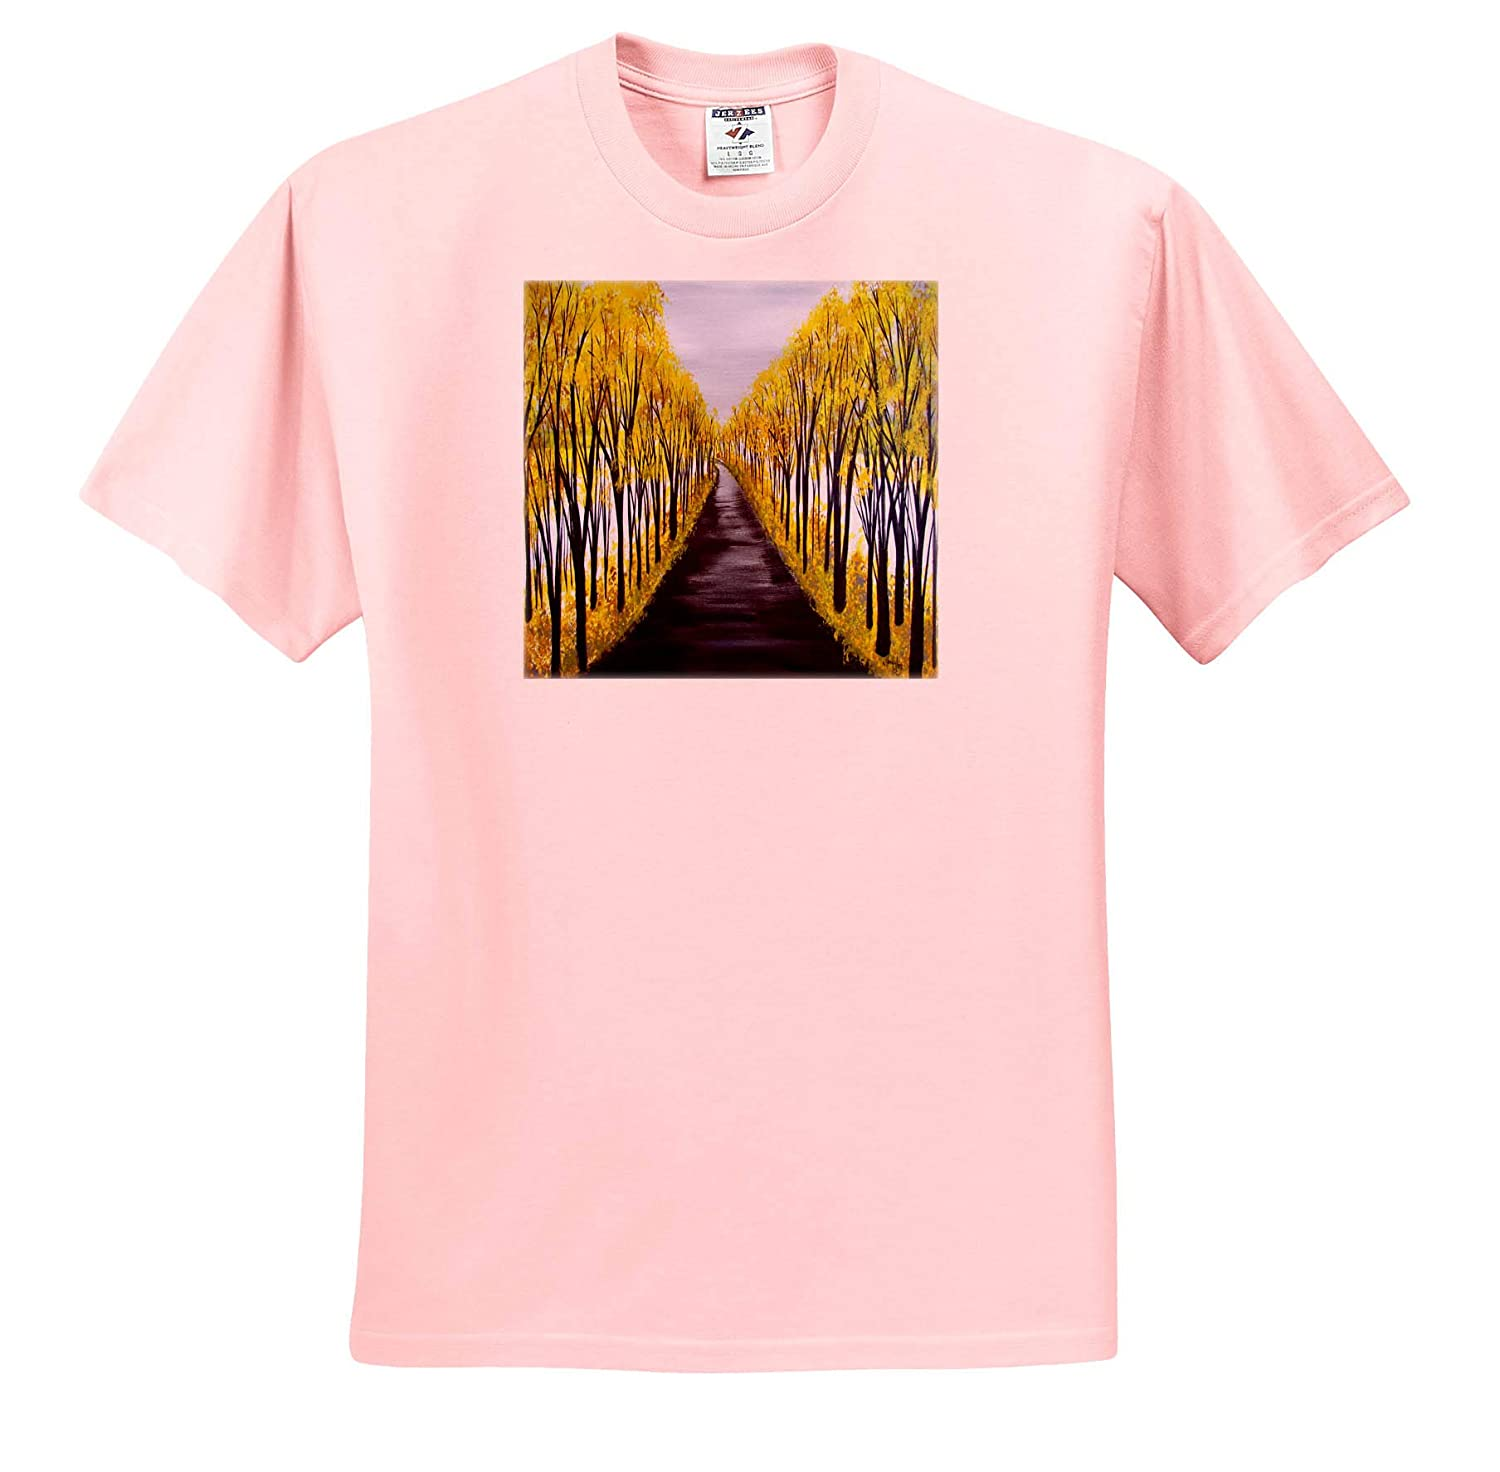 - T-Shirts Trees 3dRose Art by Mandy Joy A Realistic Image of a Road and Yellow Trees in The Fall